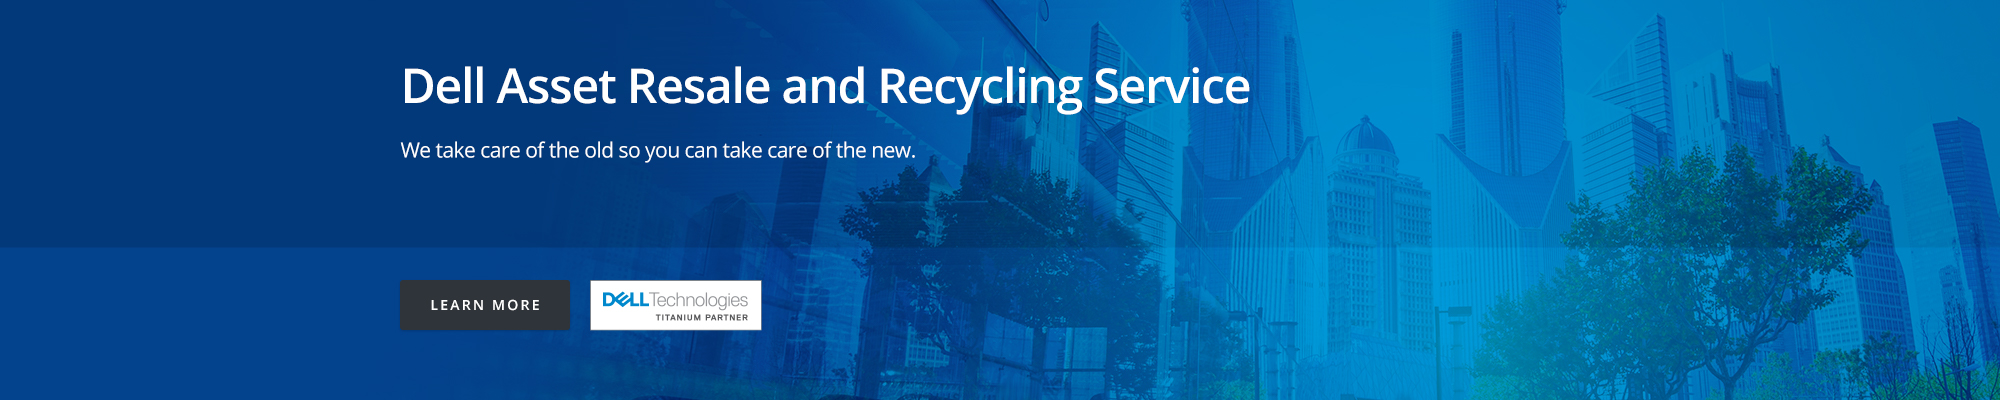 Dell Asset Resale and Recycling Service